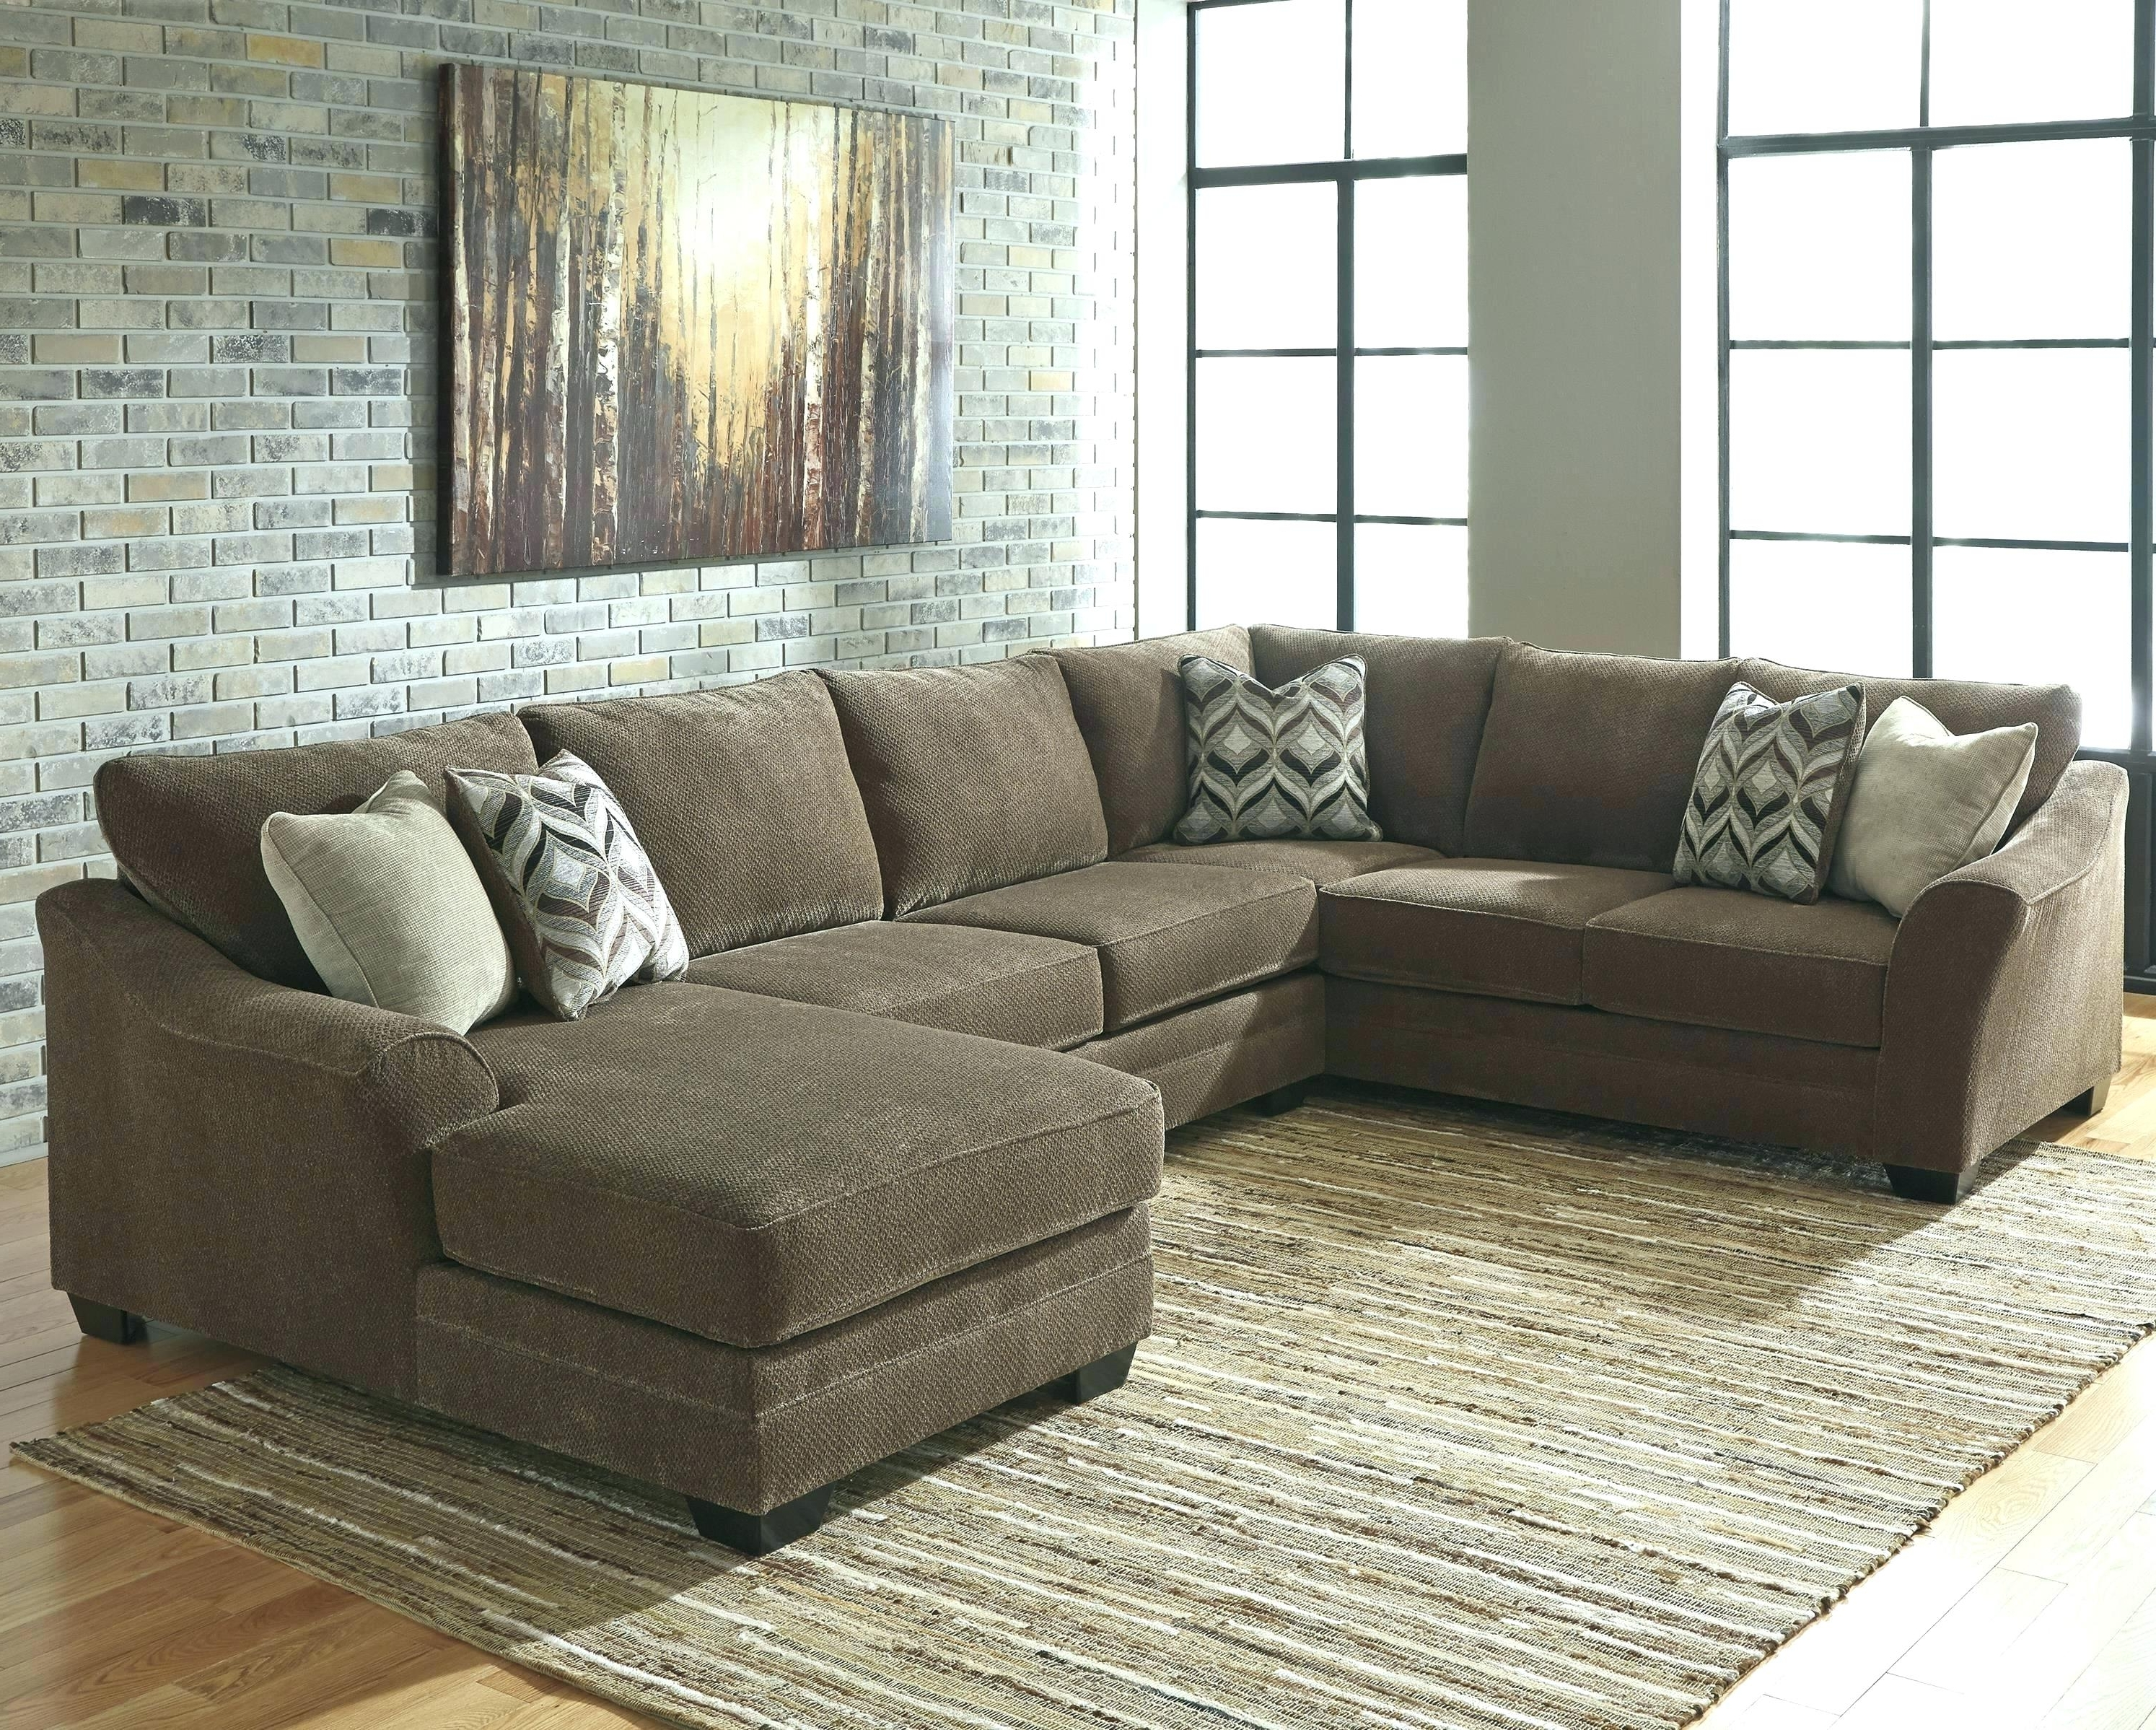 Couches For Sale Mn Duluth Marshall Used Furniture Rochester Throughout Well Liked St Cloud Mn Sectional Sofas (View 1 of 20)